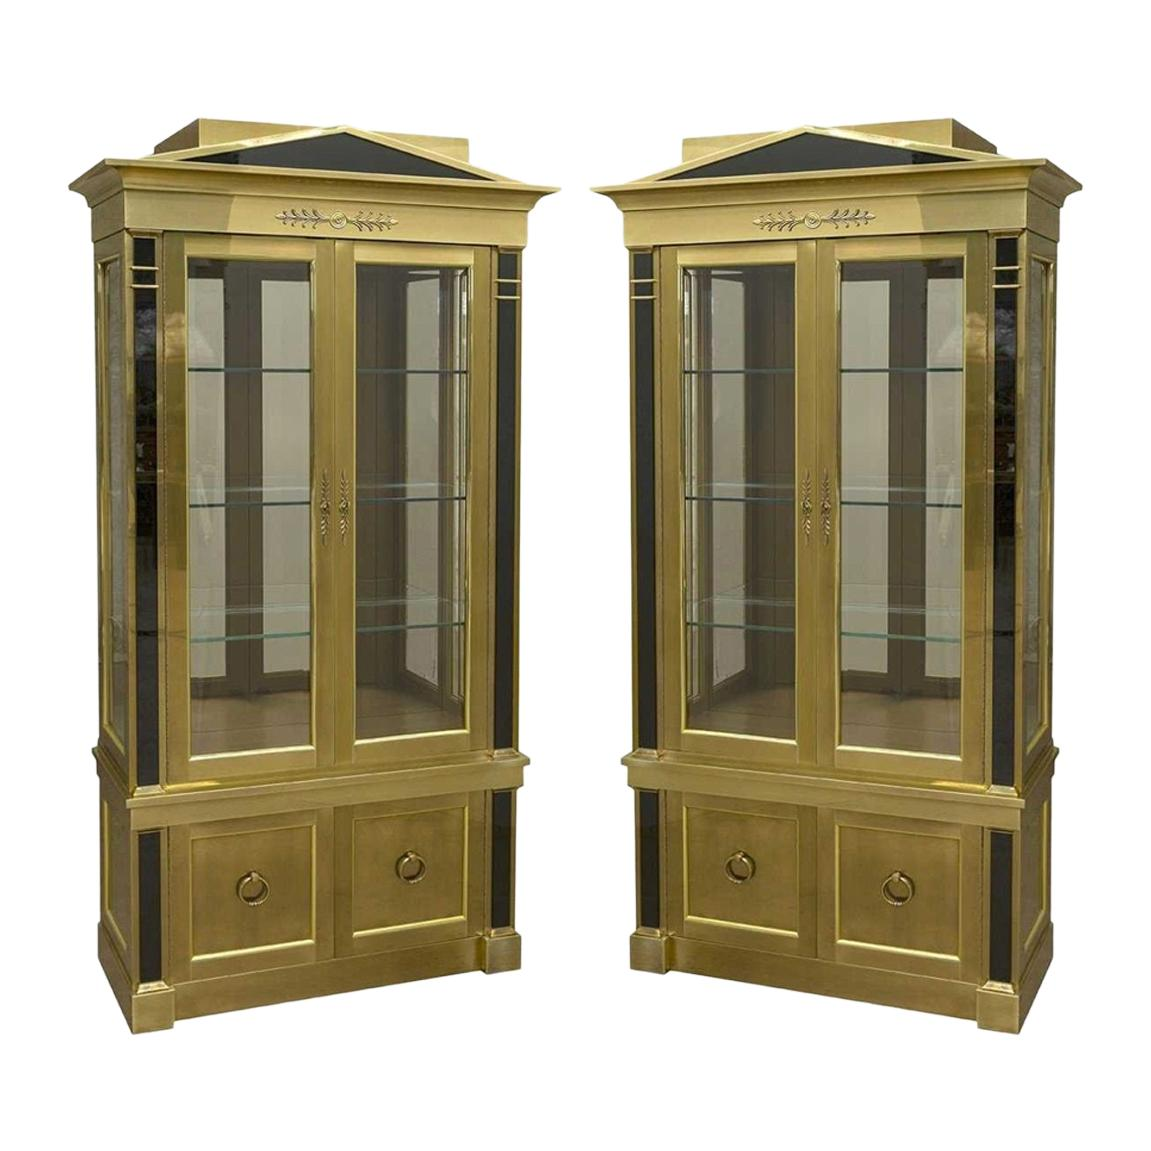 Pair of Neoclassical Brass Vitrine Cabinets by Mastercraft